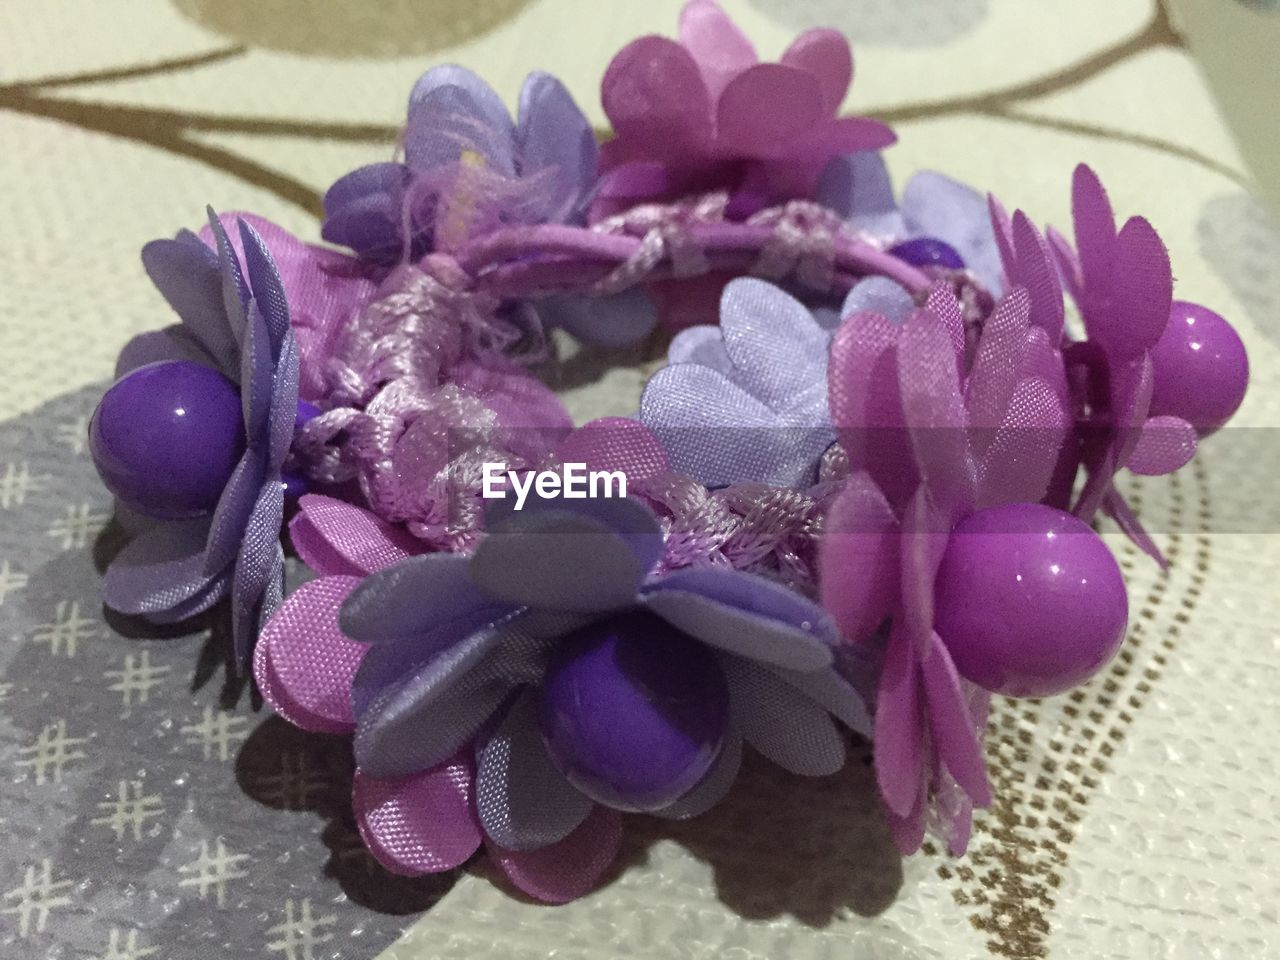 flower, petal, purple, indoors, gift, no people, flower head, celebration, beauty in nature, close-up, fragility, pink color, high angle view, nature, ribbon - sewing item, ribbon, day, freshness